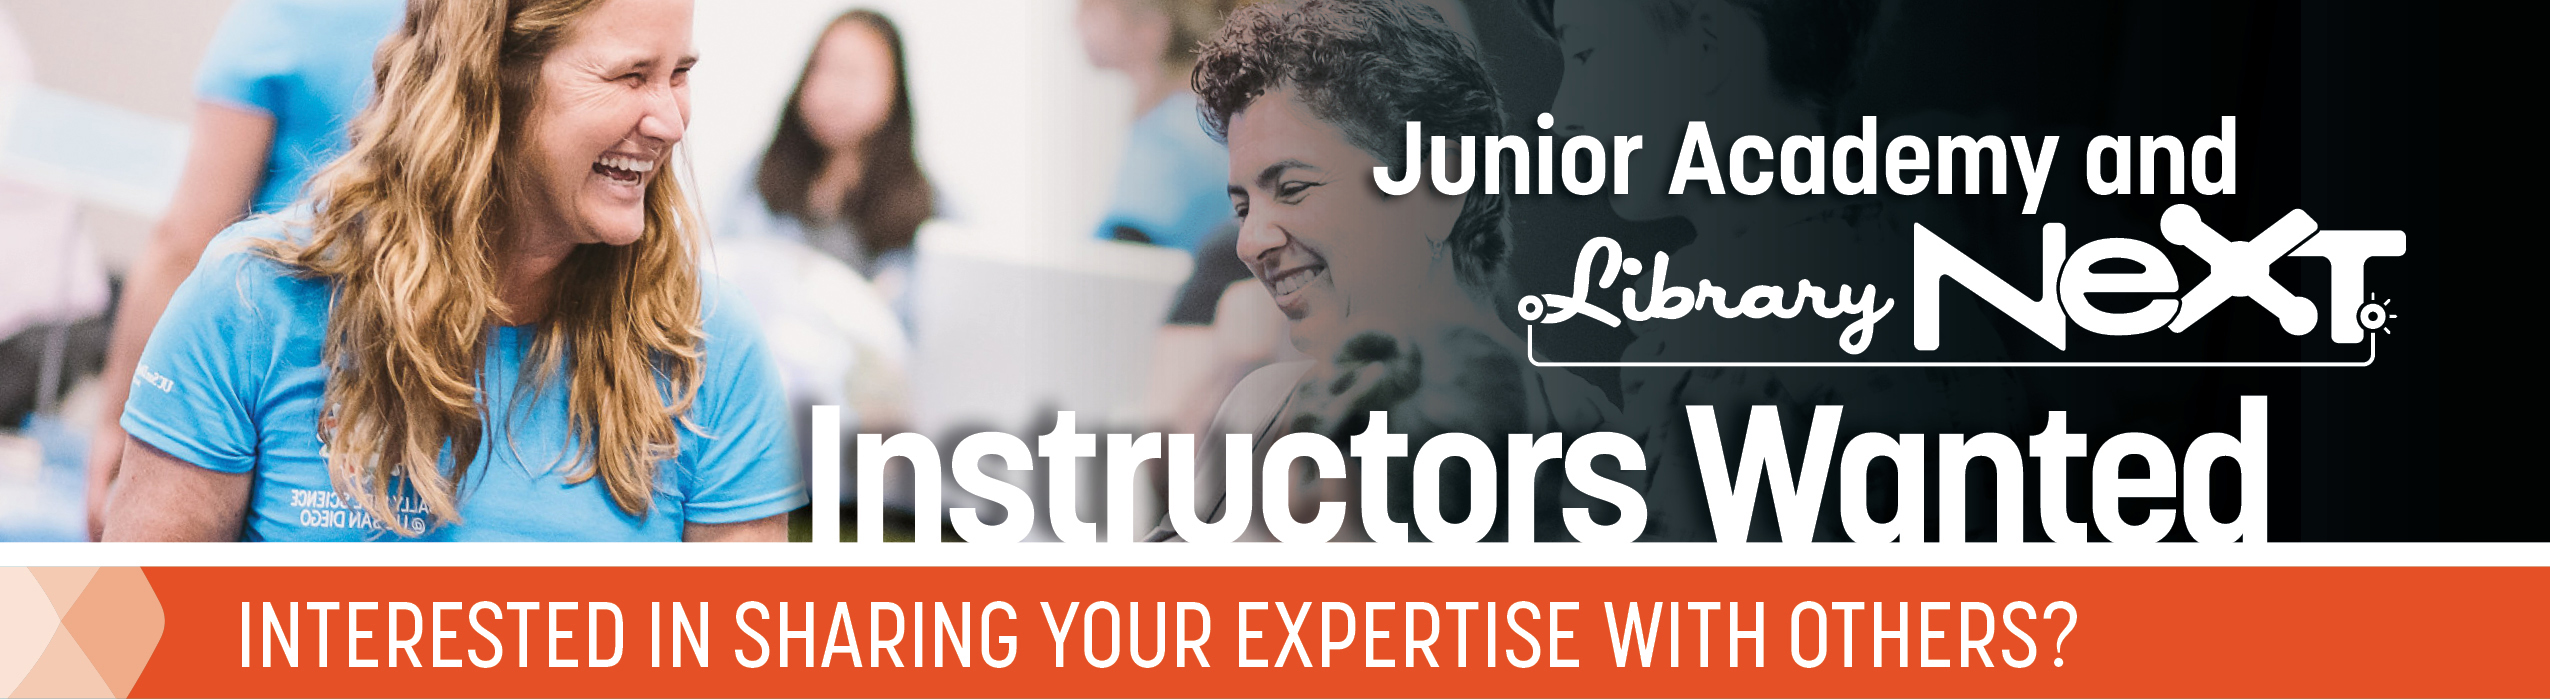 Sally Ride Science Junior Academy: Instructors Wanted!